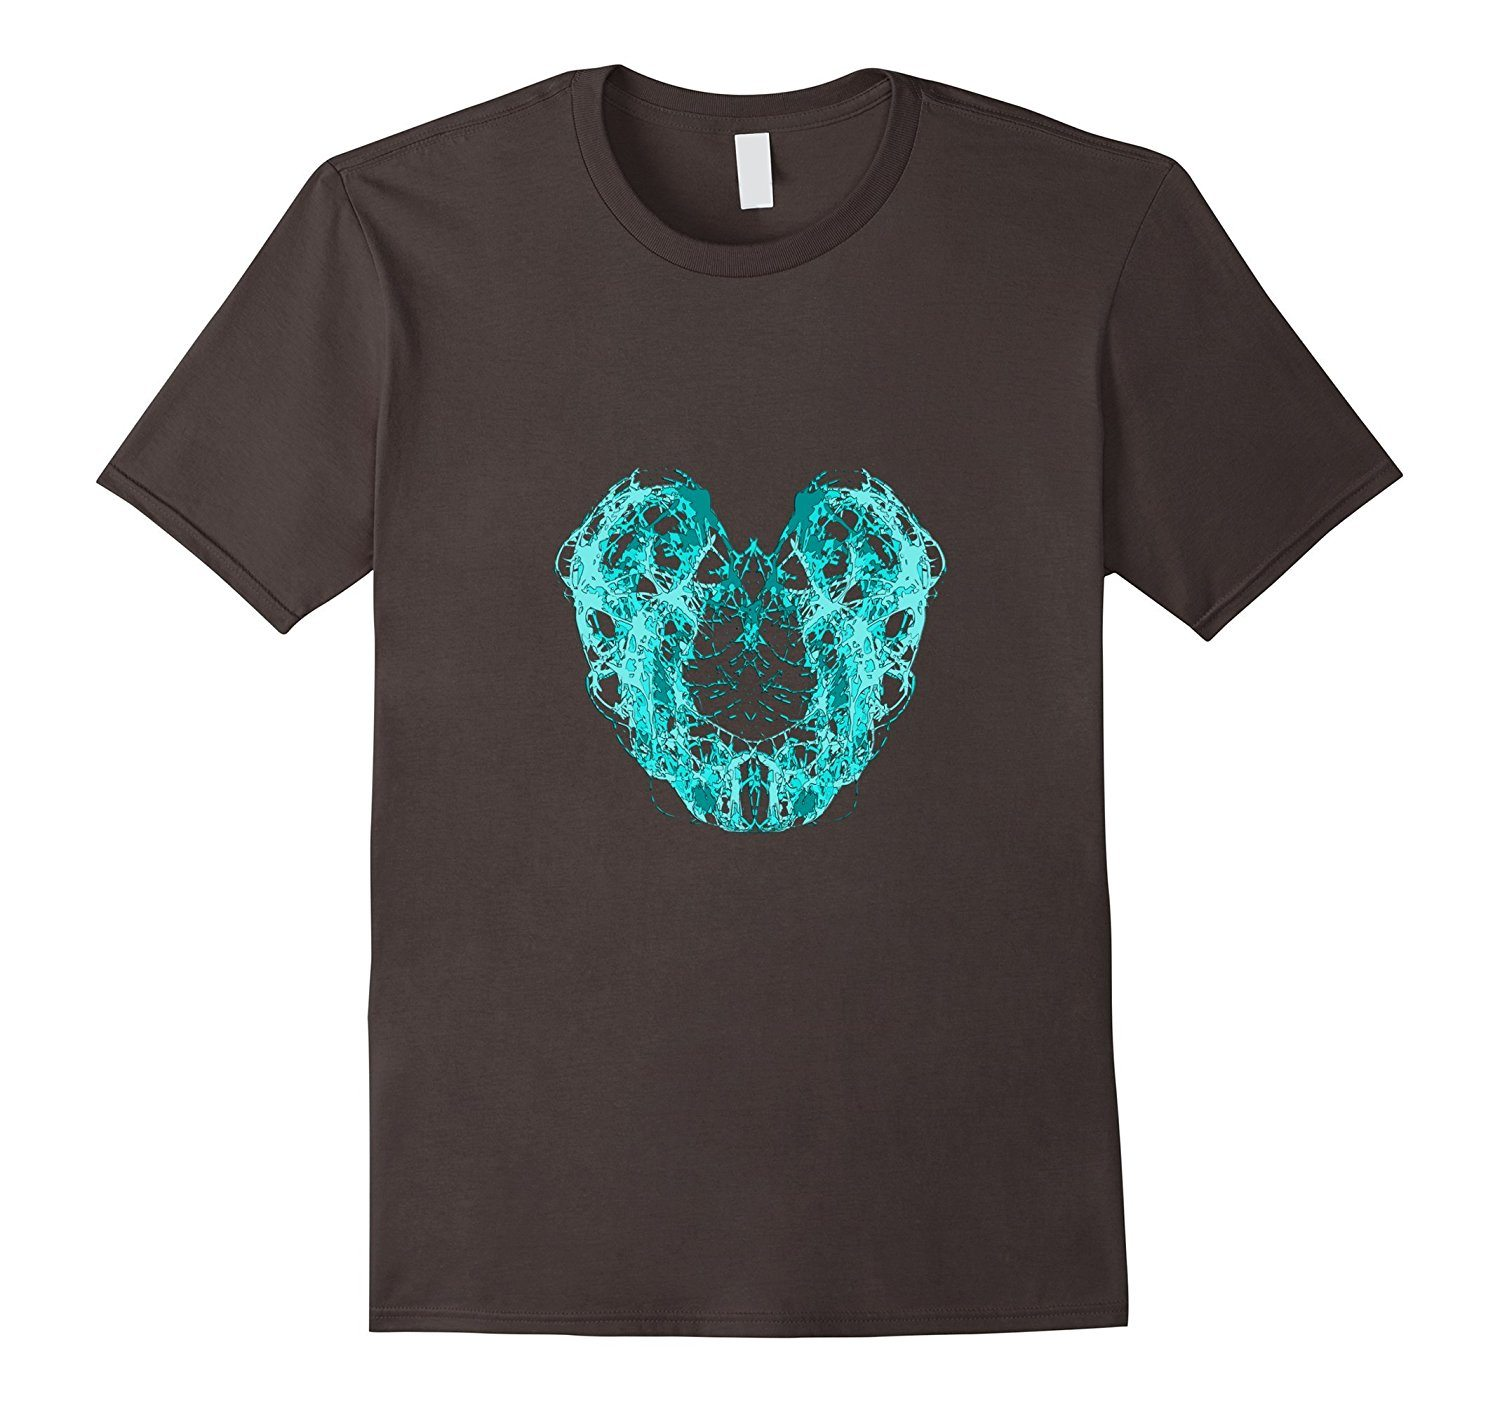 Abstract Frosted Heart Shape graphic